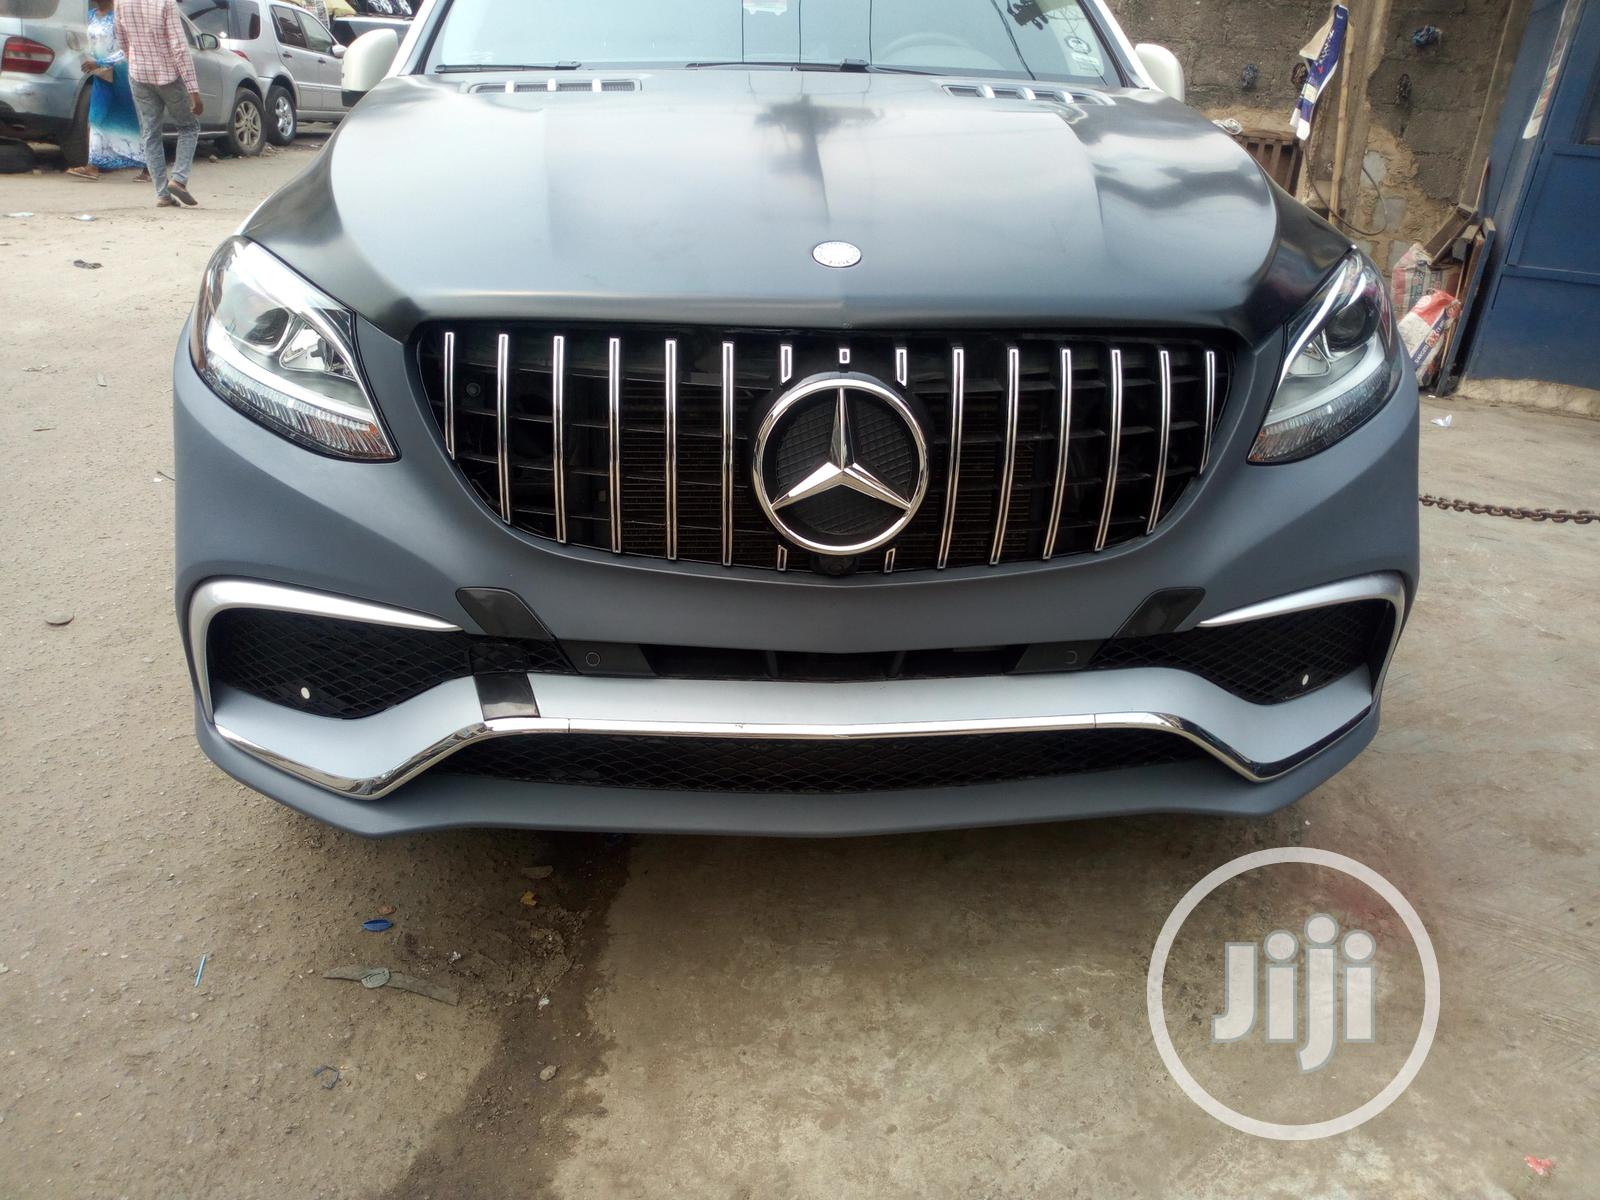 Mercedes Benz Latest Bumper | Vehicle Parts & Accessories for sale in Surulere, Lagos State, Nigeria